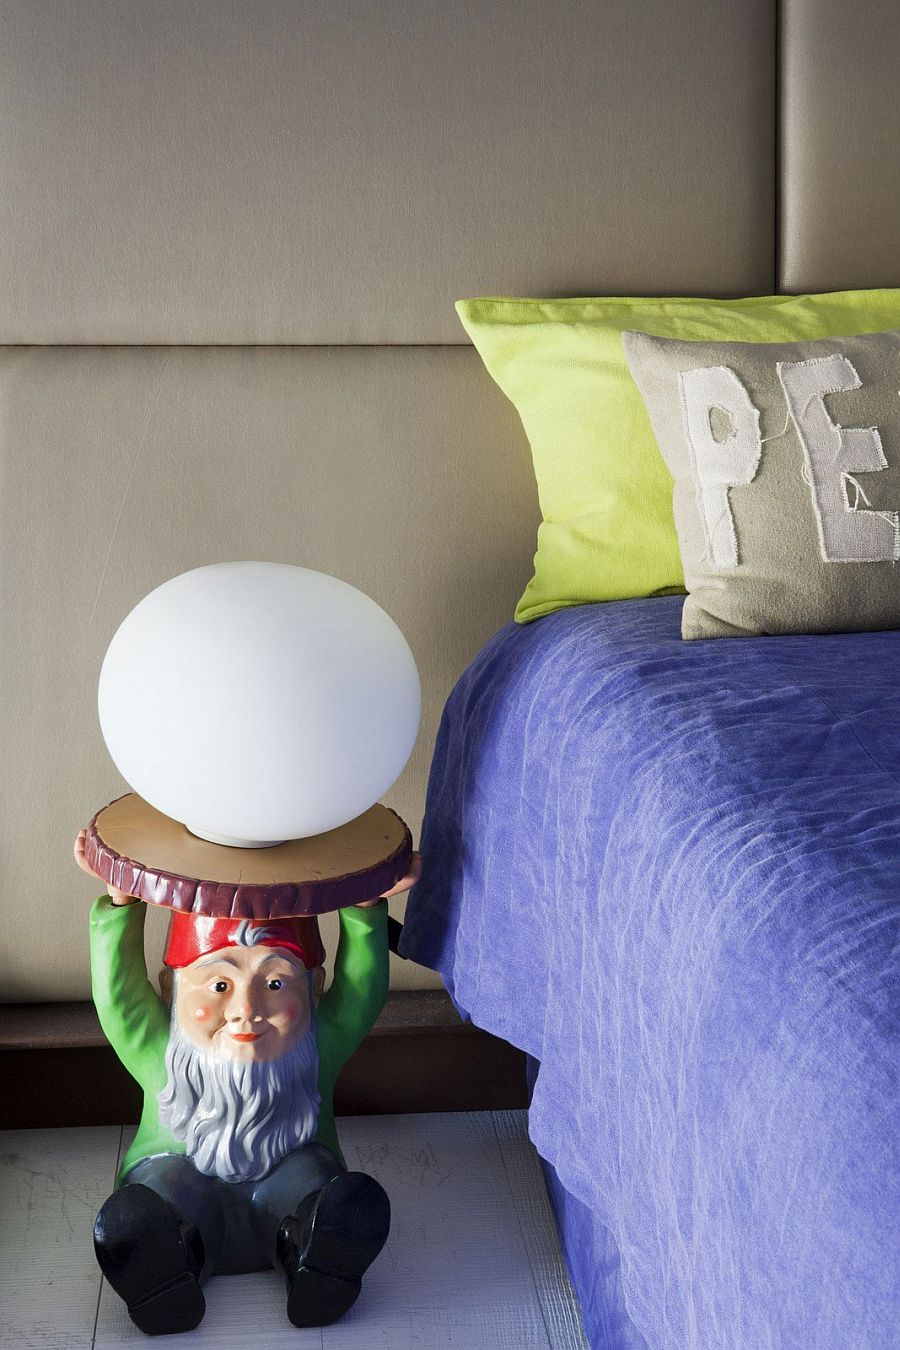 Bedside gnome lighting is perfect for thos who love the uncanny